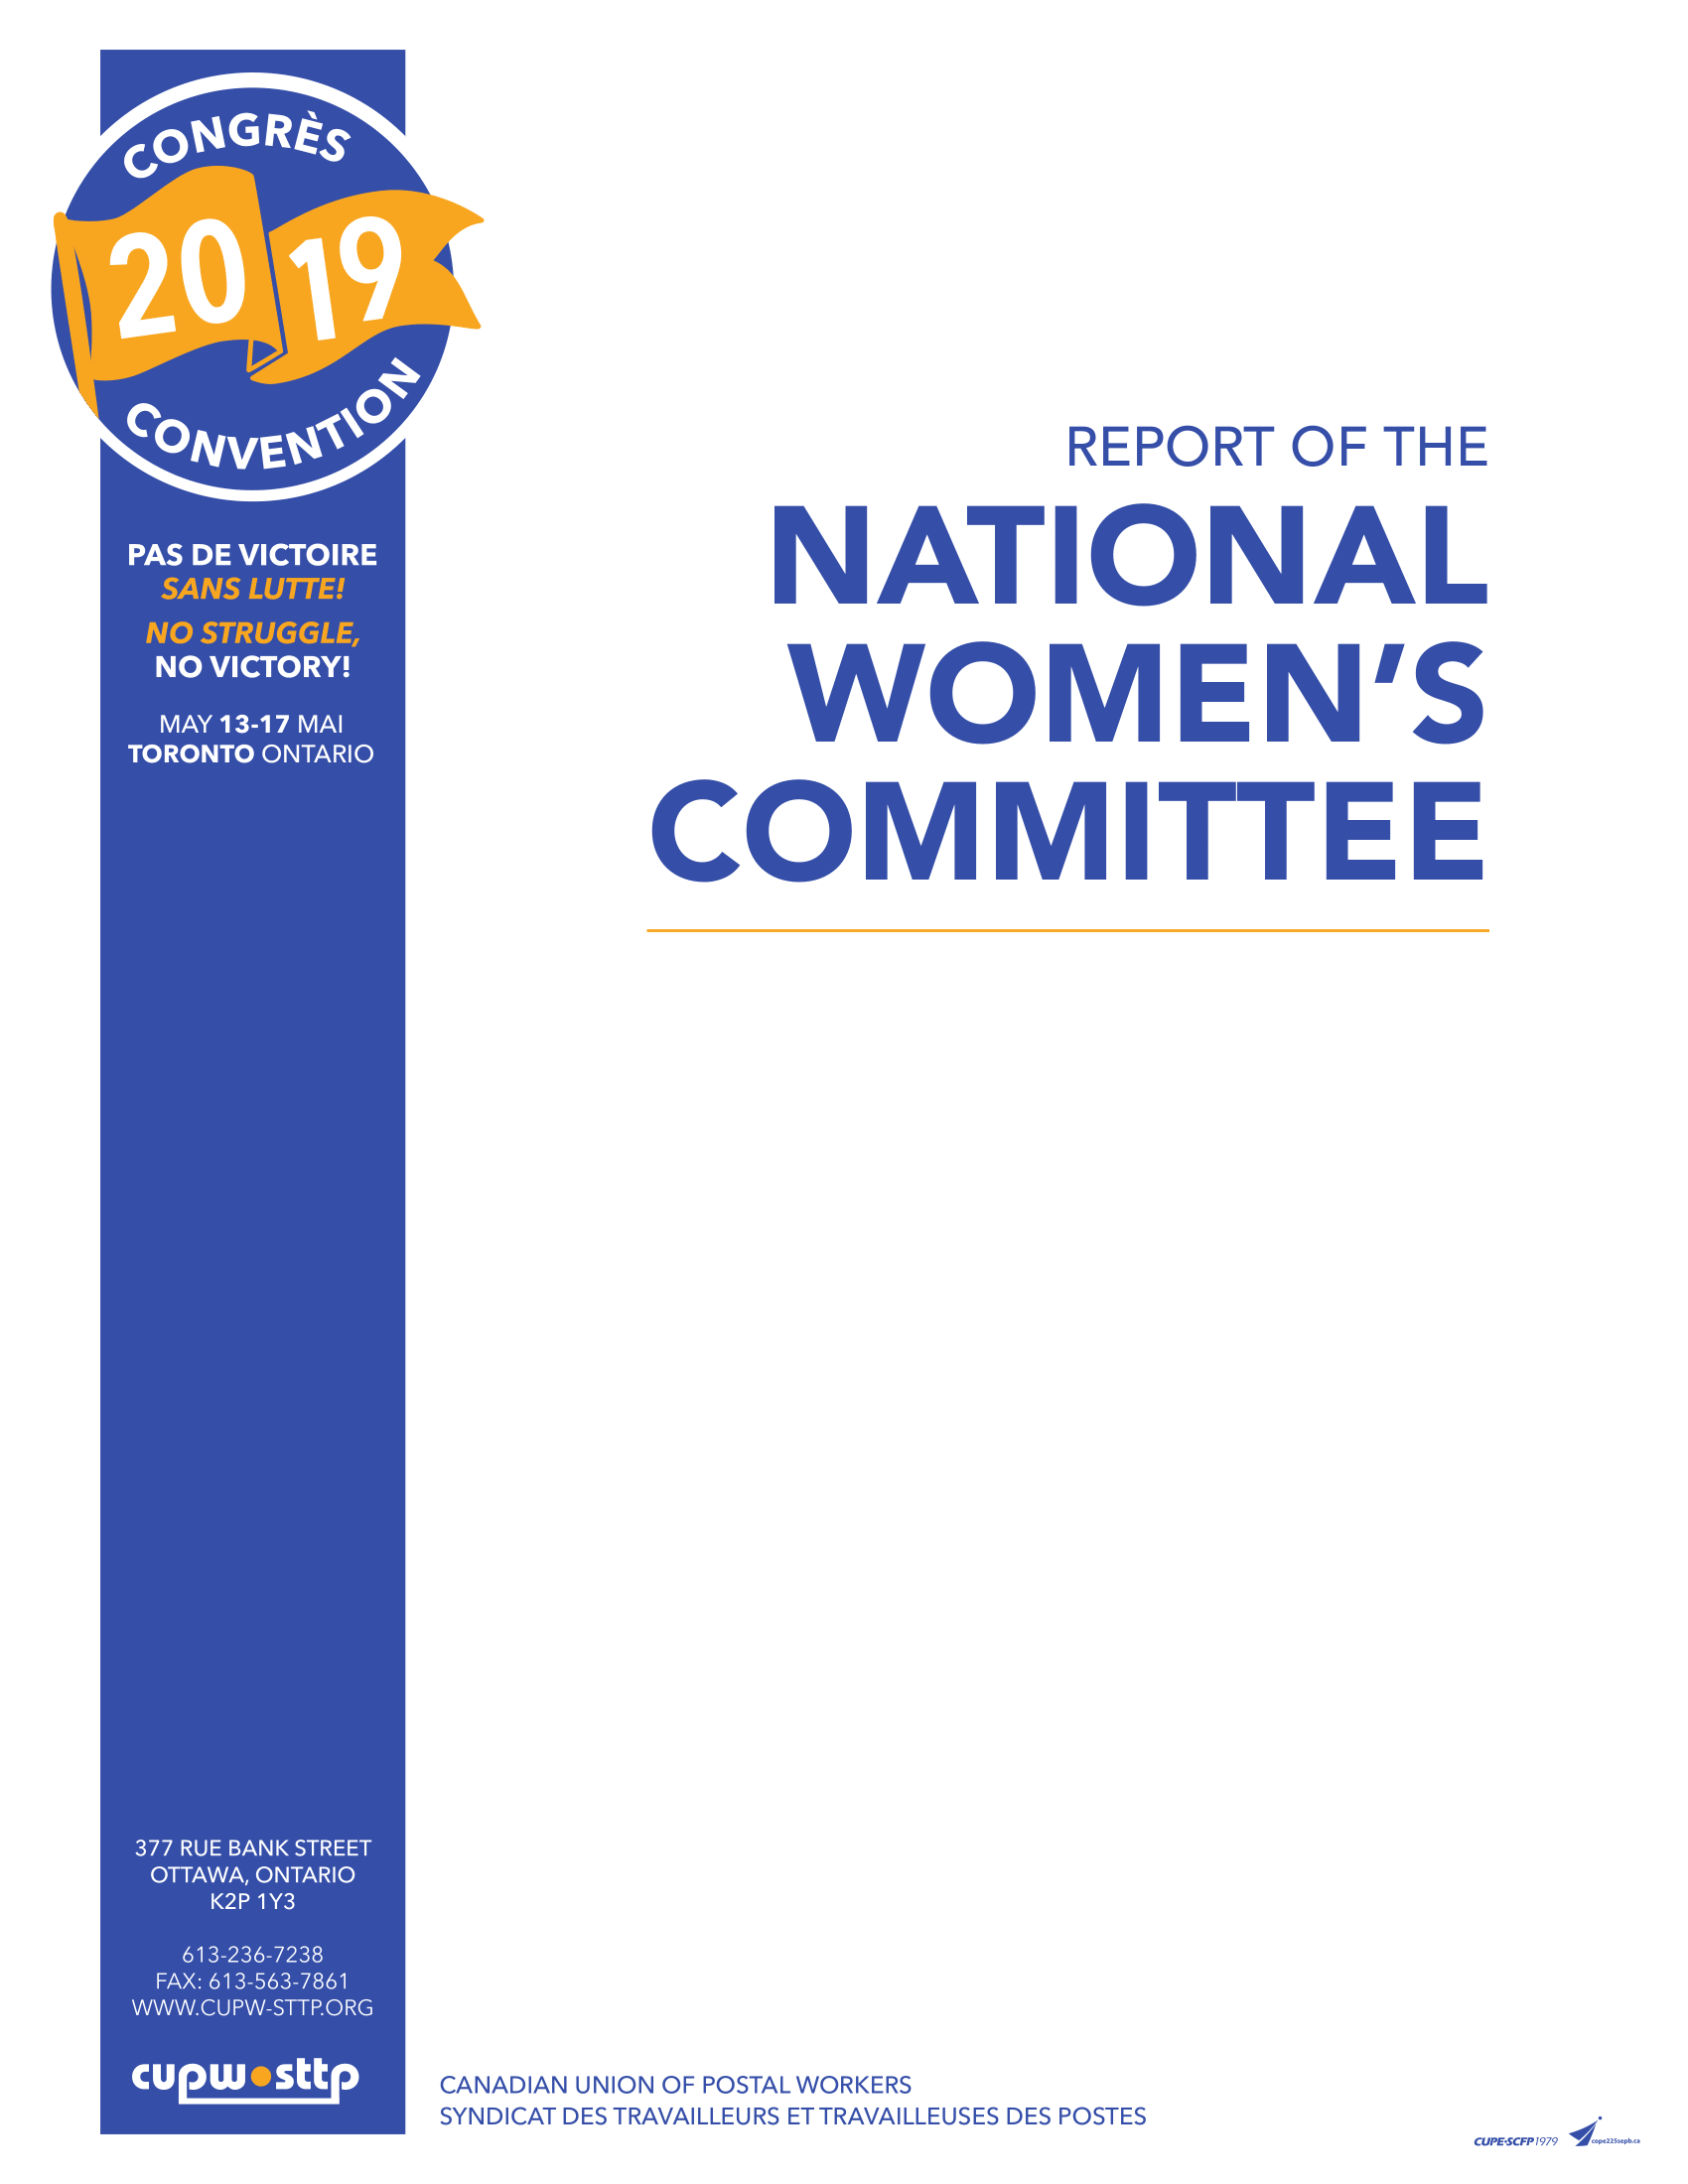 Report of the National Women's Committee (2019)